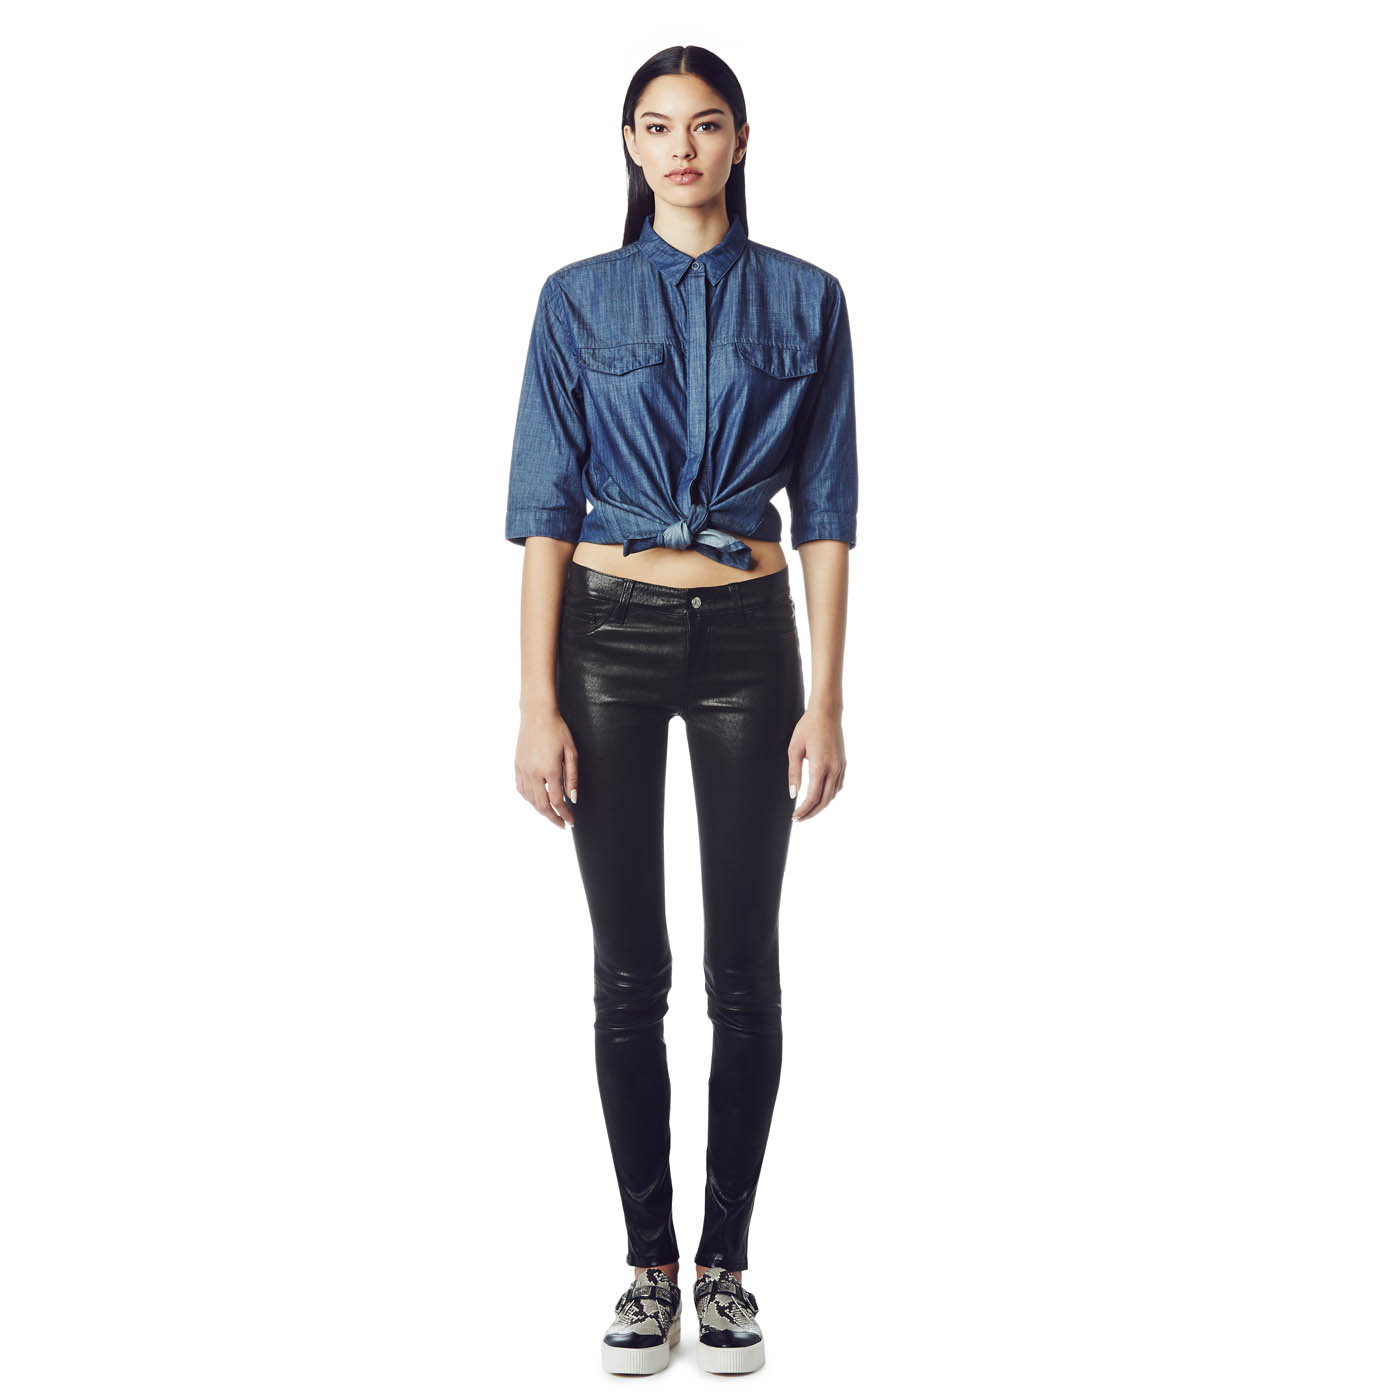 Ash Studio Paris  Day Dream Black Leather Pant 265014 (001)